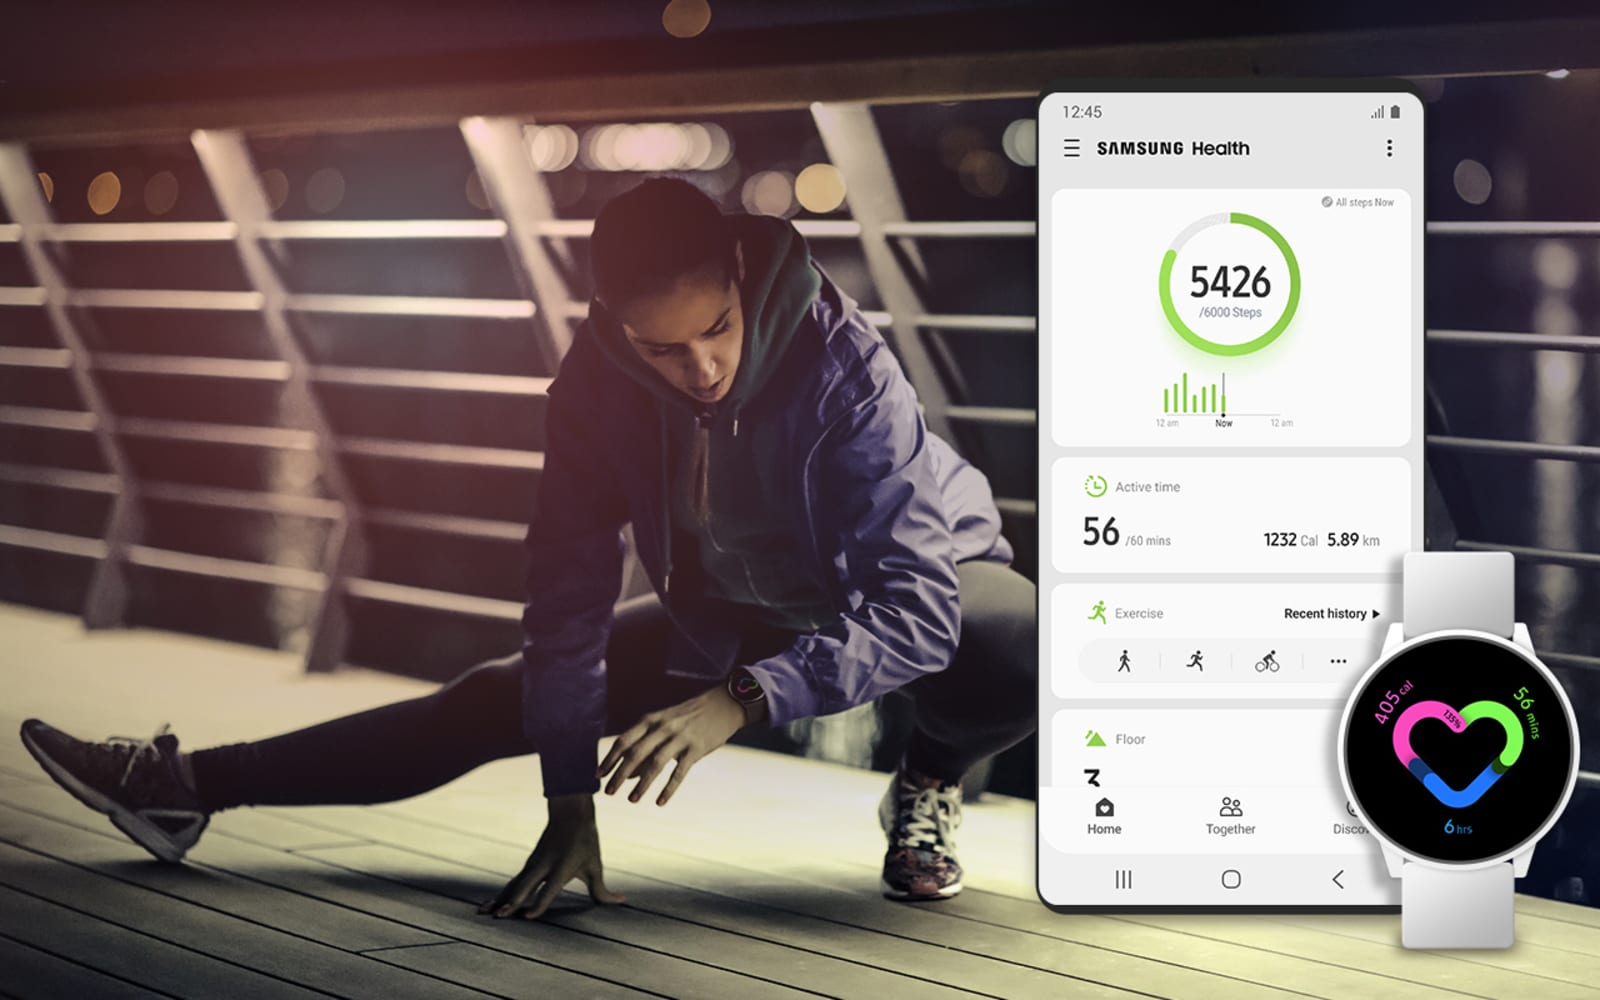 Samsung finally adds period tracking to its Health app